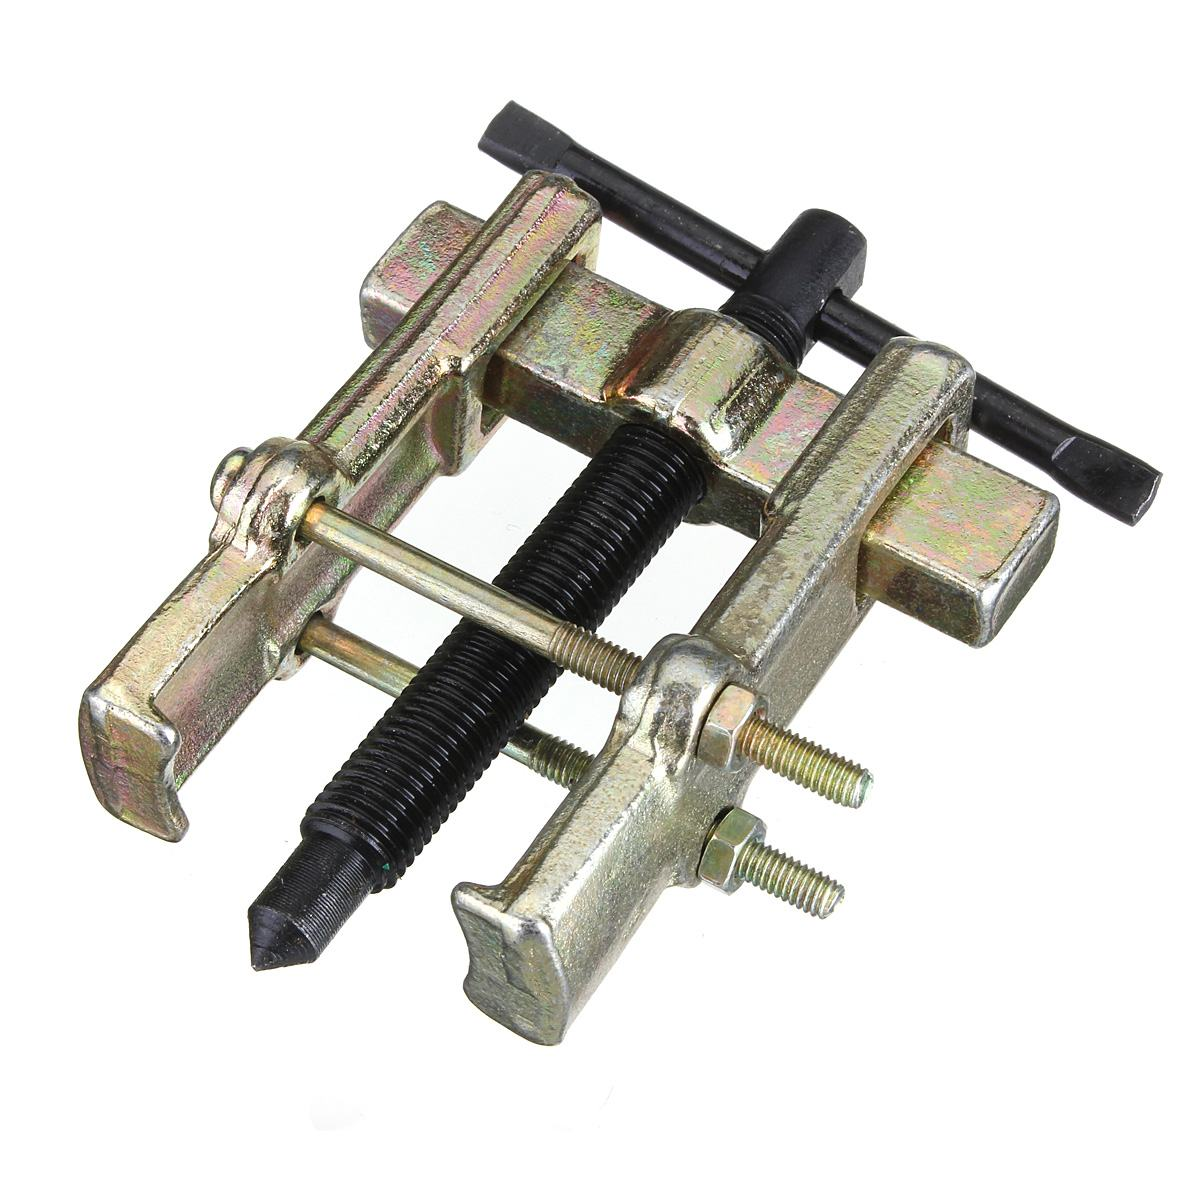 High Quality 2 Inch 65mm Carbon Steel Two Jaws Gear Puller Armature Bearing Spiral Puller Forging Hot Sale